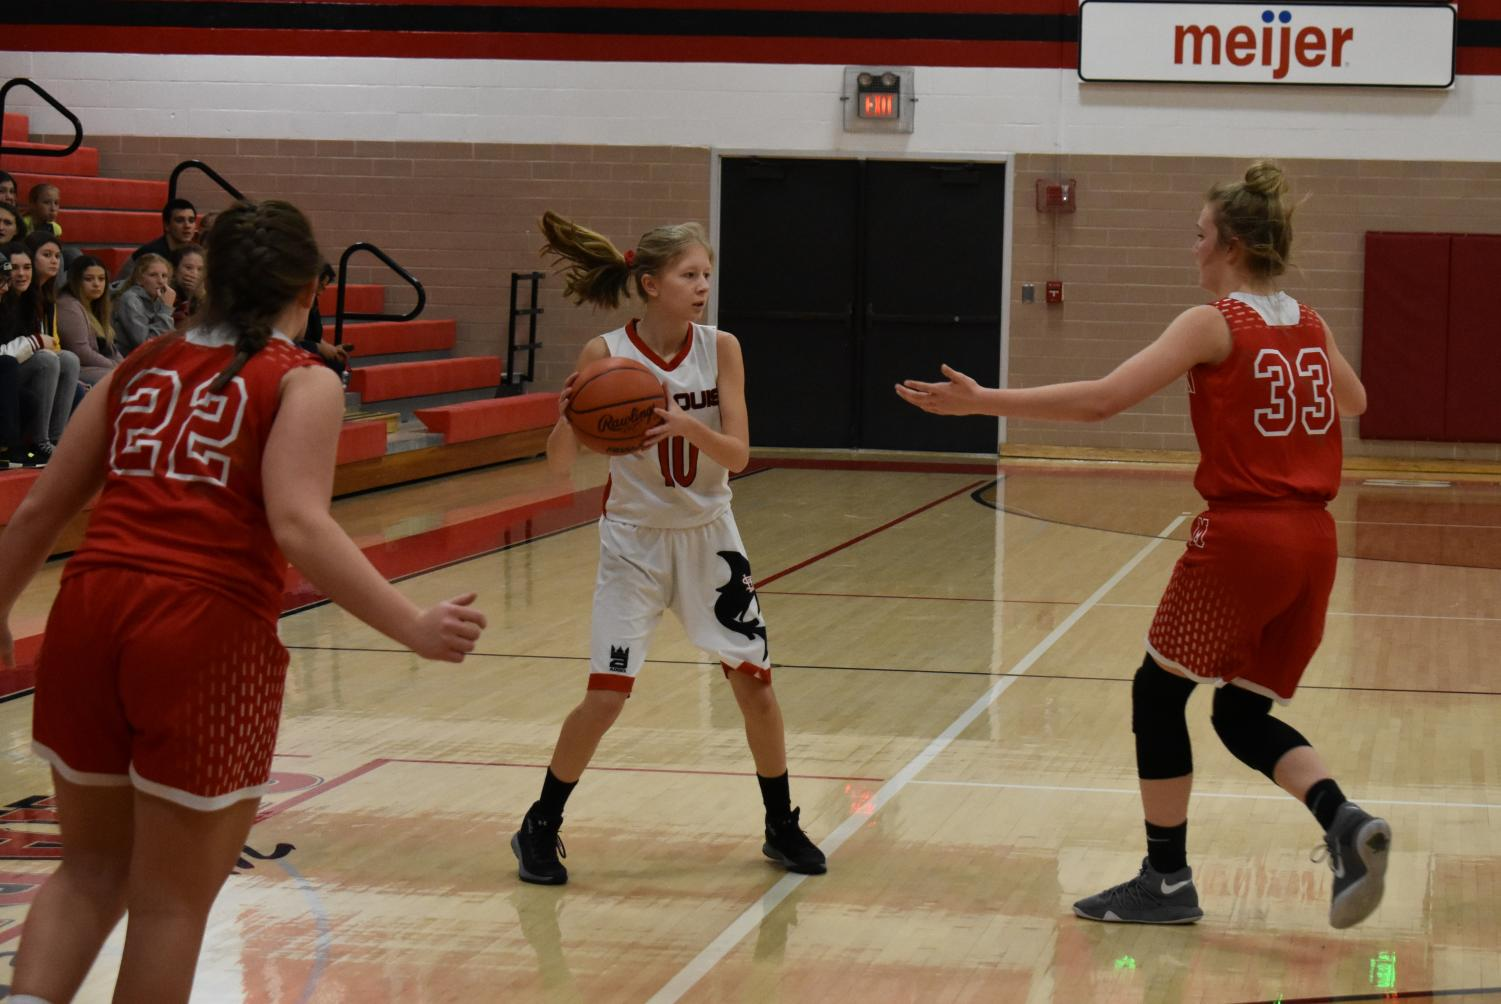 Mikaila Borie handles the ball while surveying the floor for open teammates